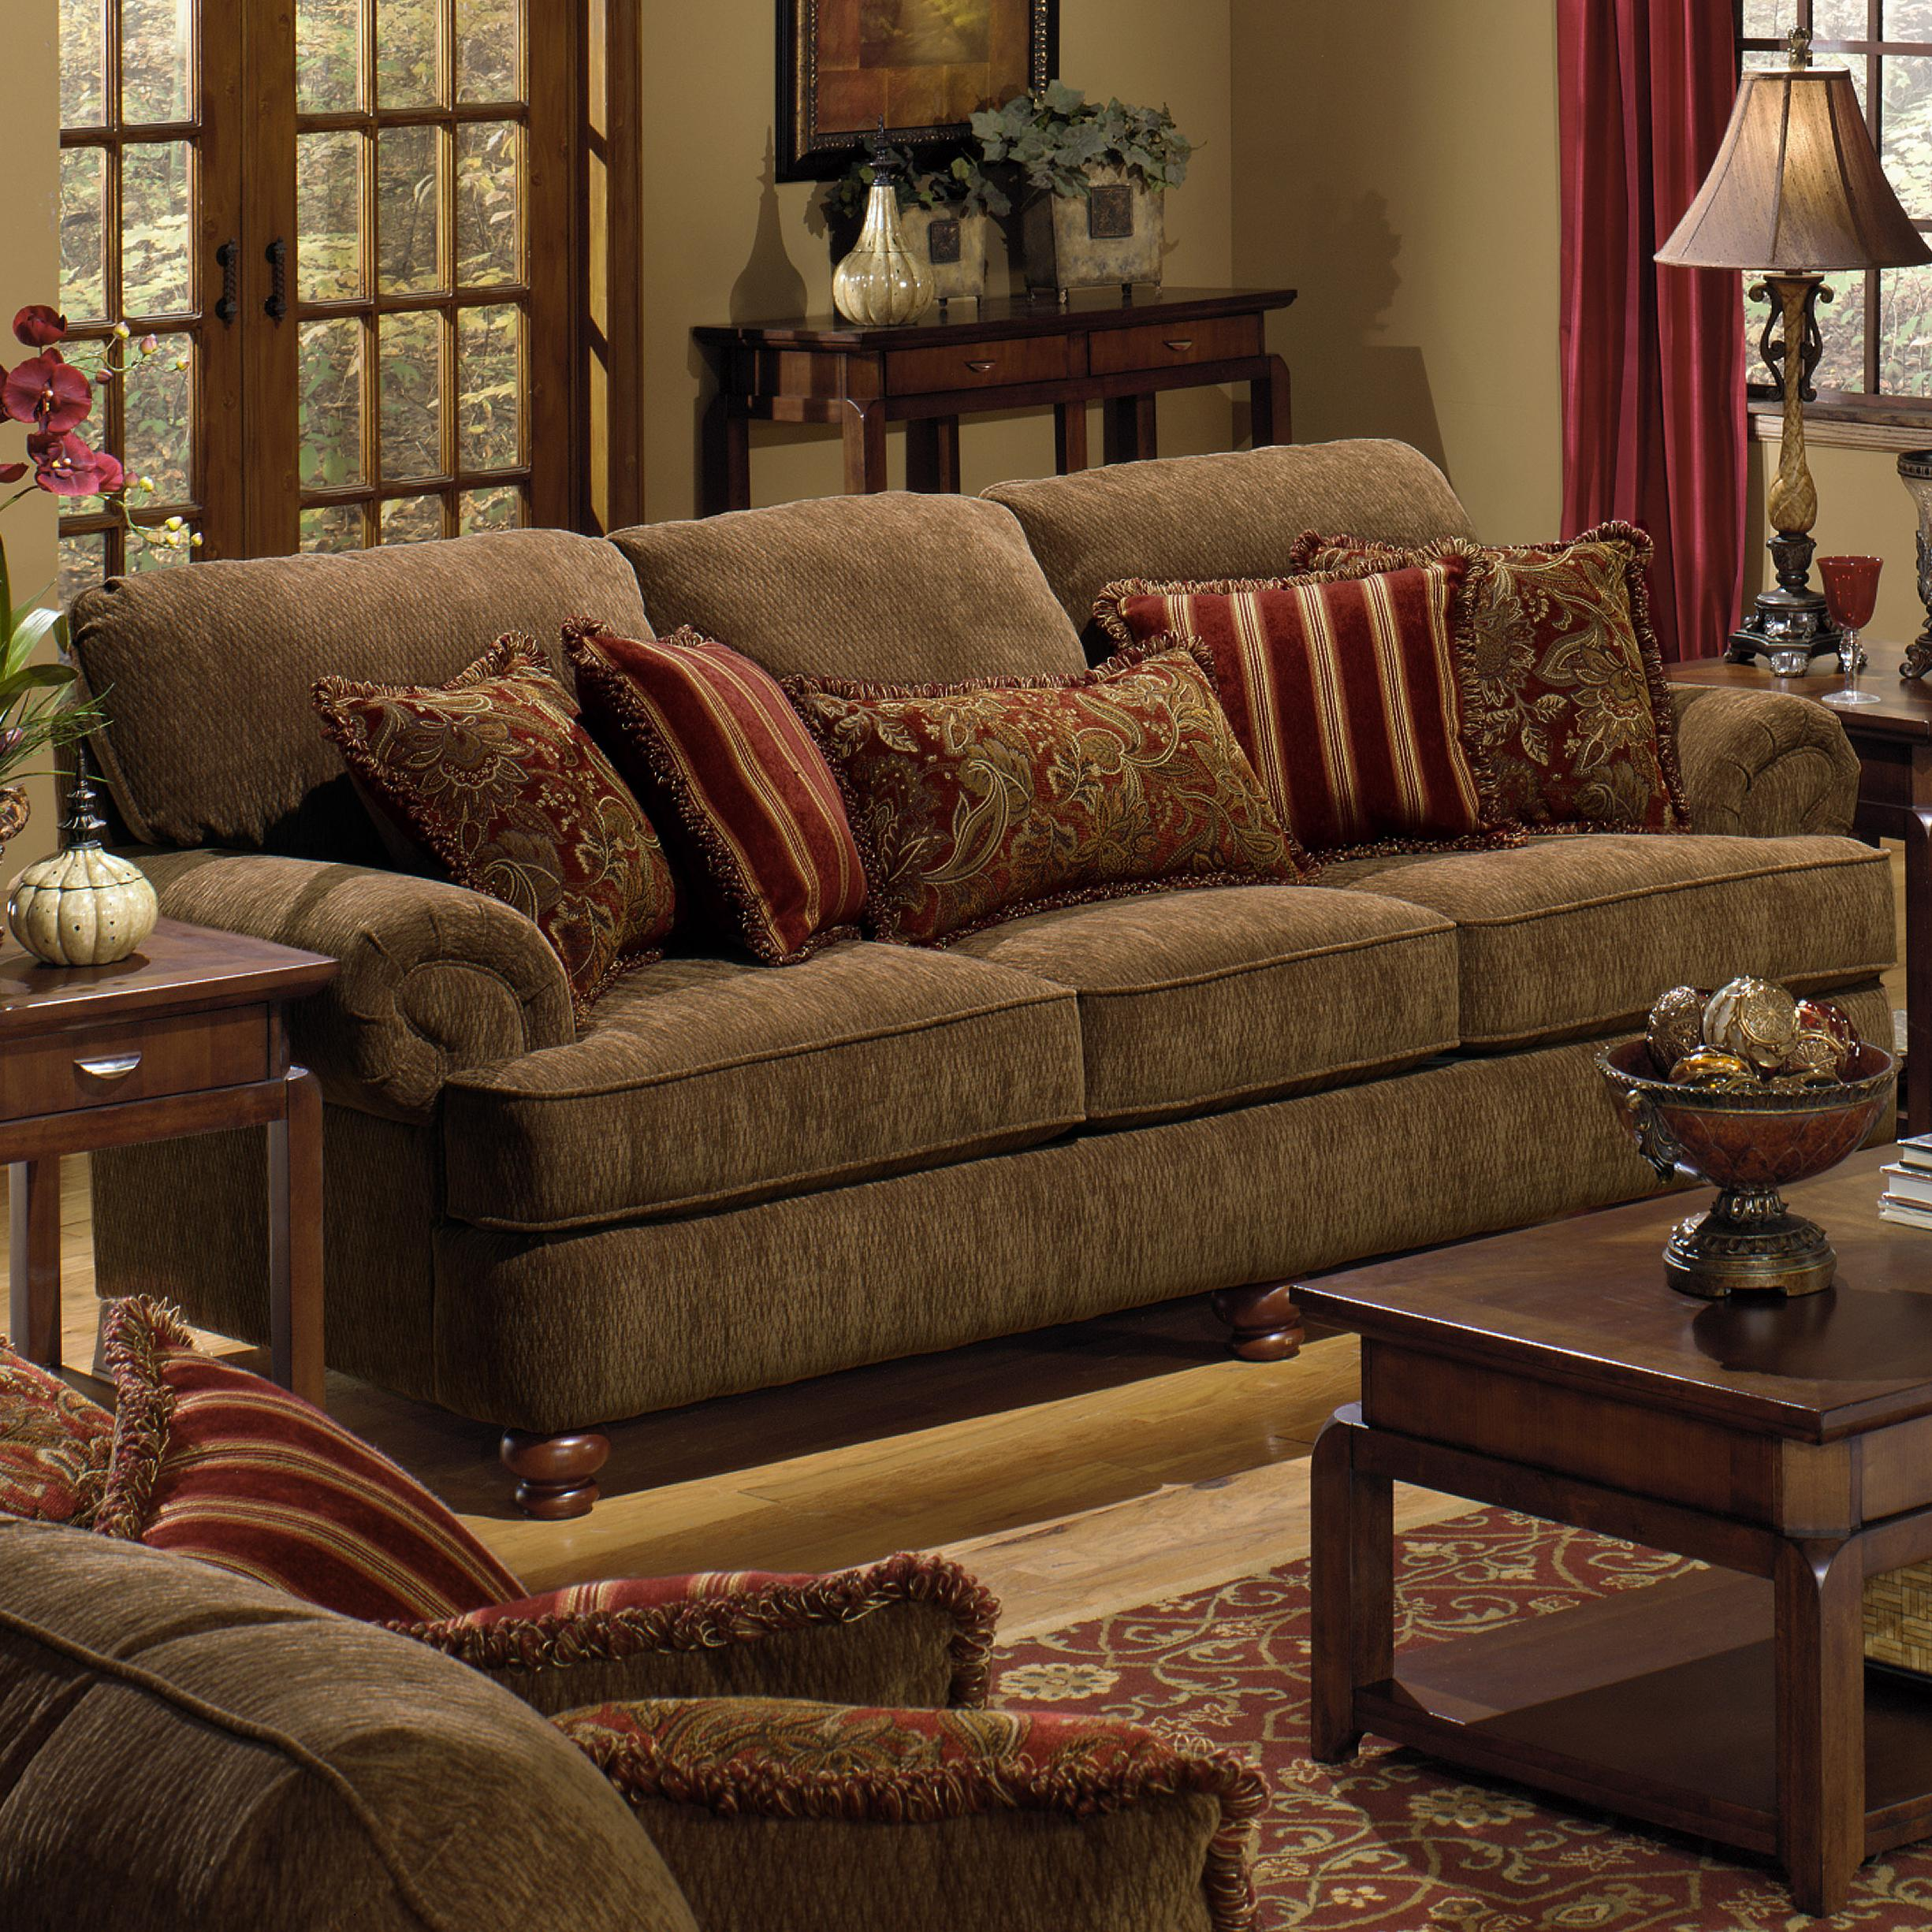 decorative pillows for sofa kid proof fabric with rolled arms and